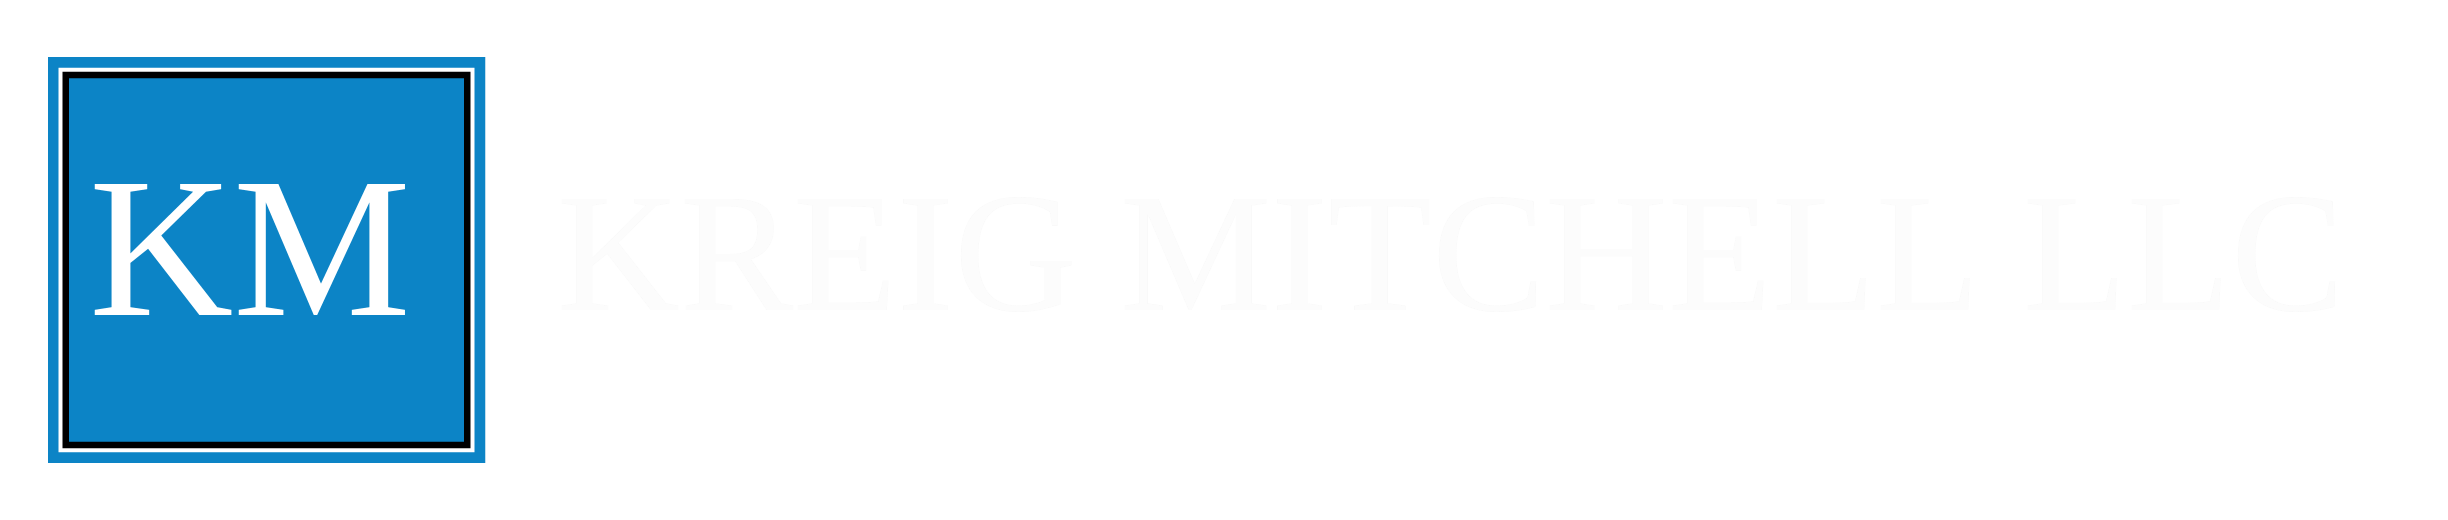 Houston Tax Attorneys: Kreig Mitchell